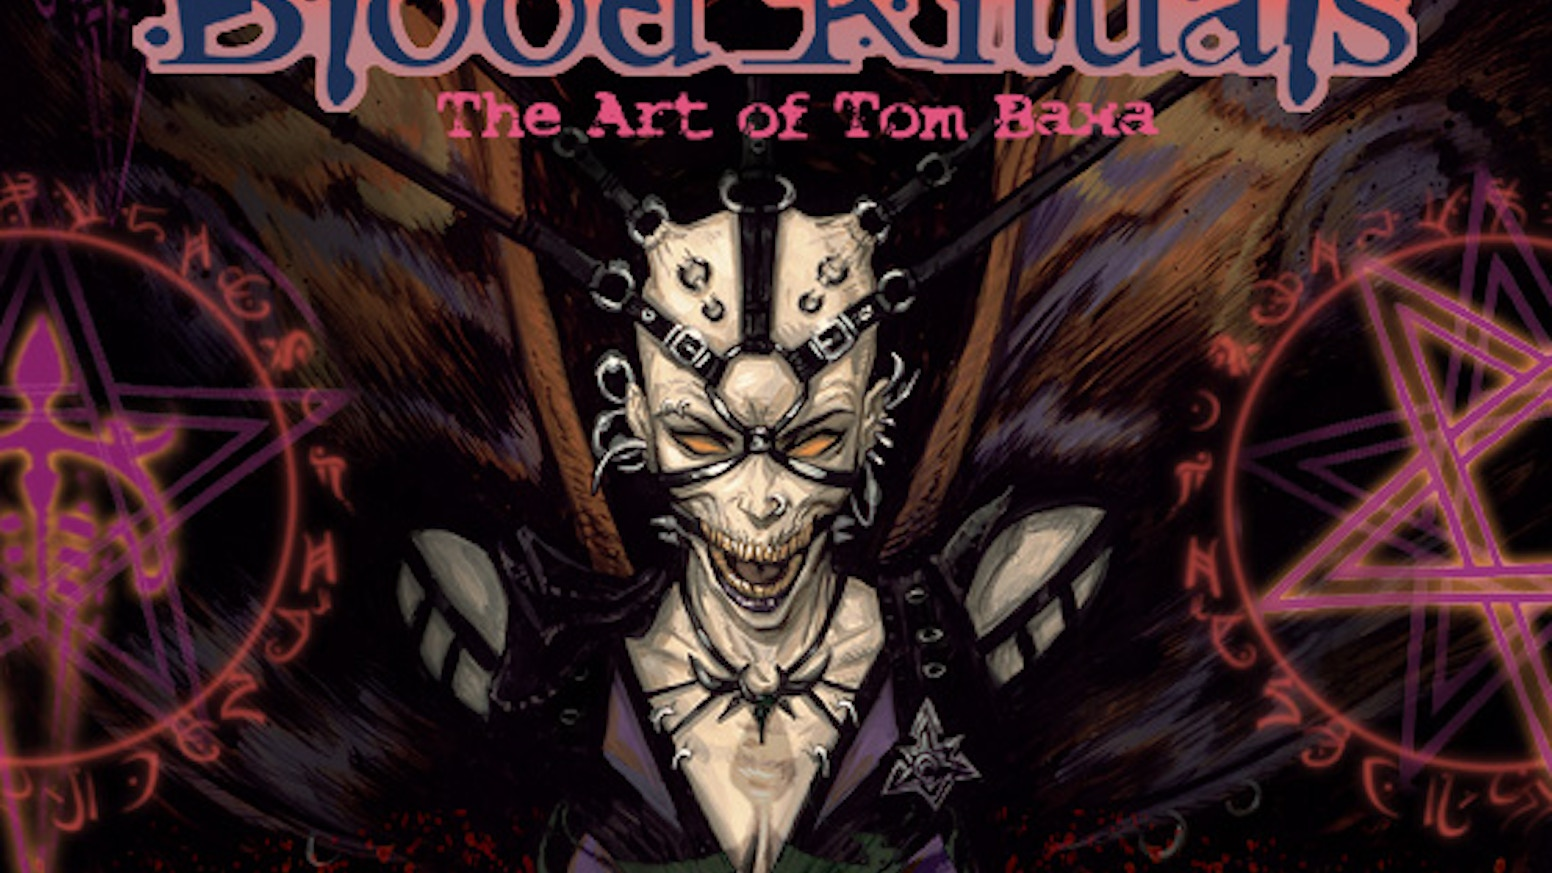 Art book collecting the dark fantasy art of world renowned artist Tom Baxa. 112 pages of  gruesome creatures that are both menacing and captivating!